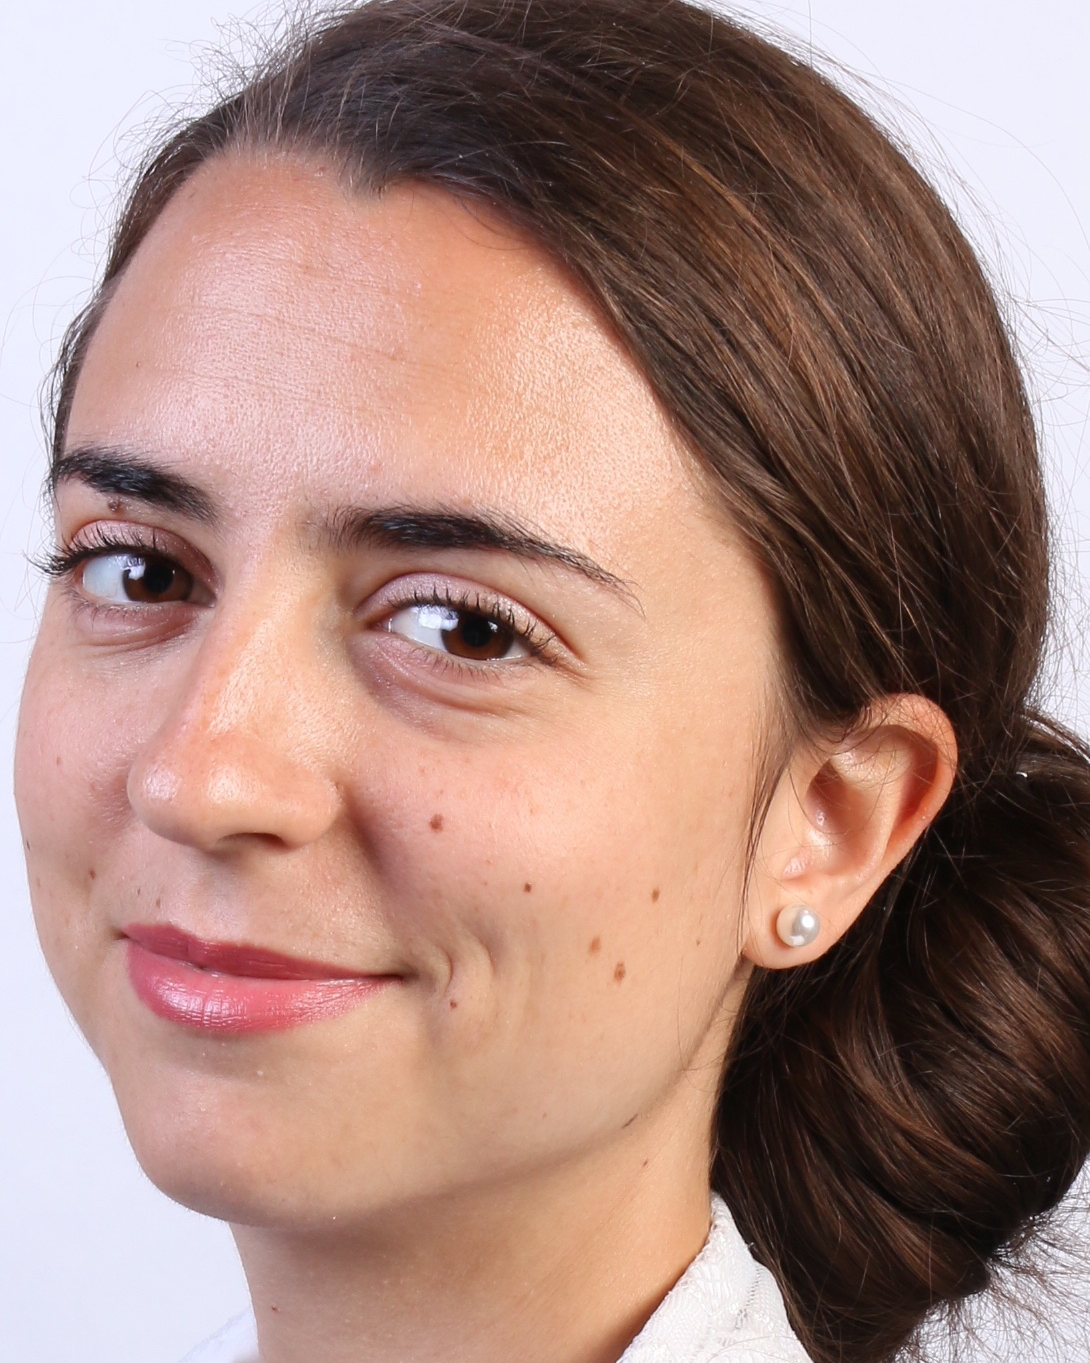 Close-up portrait of Luisa Seguin, PhD student in Linguistics